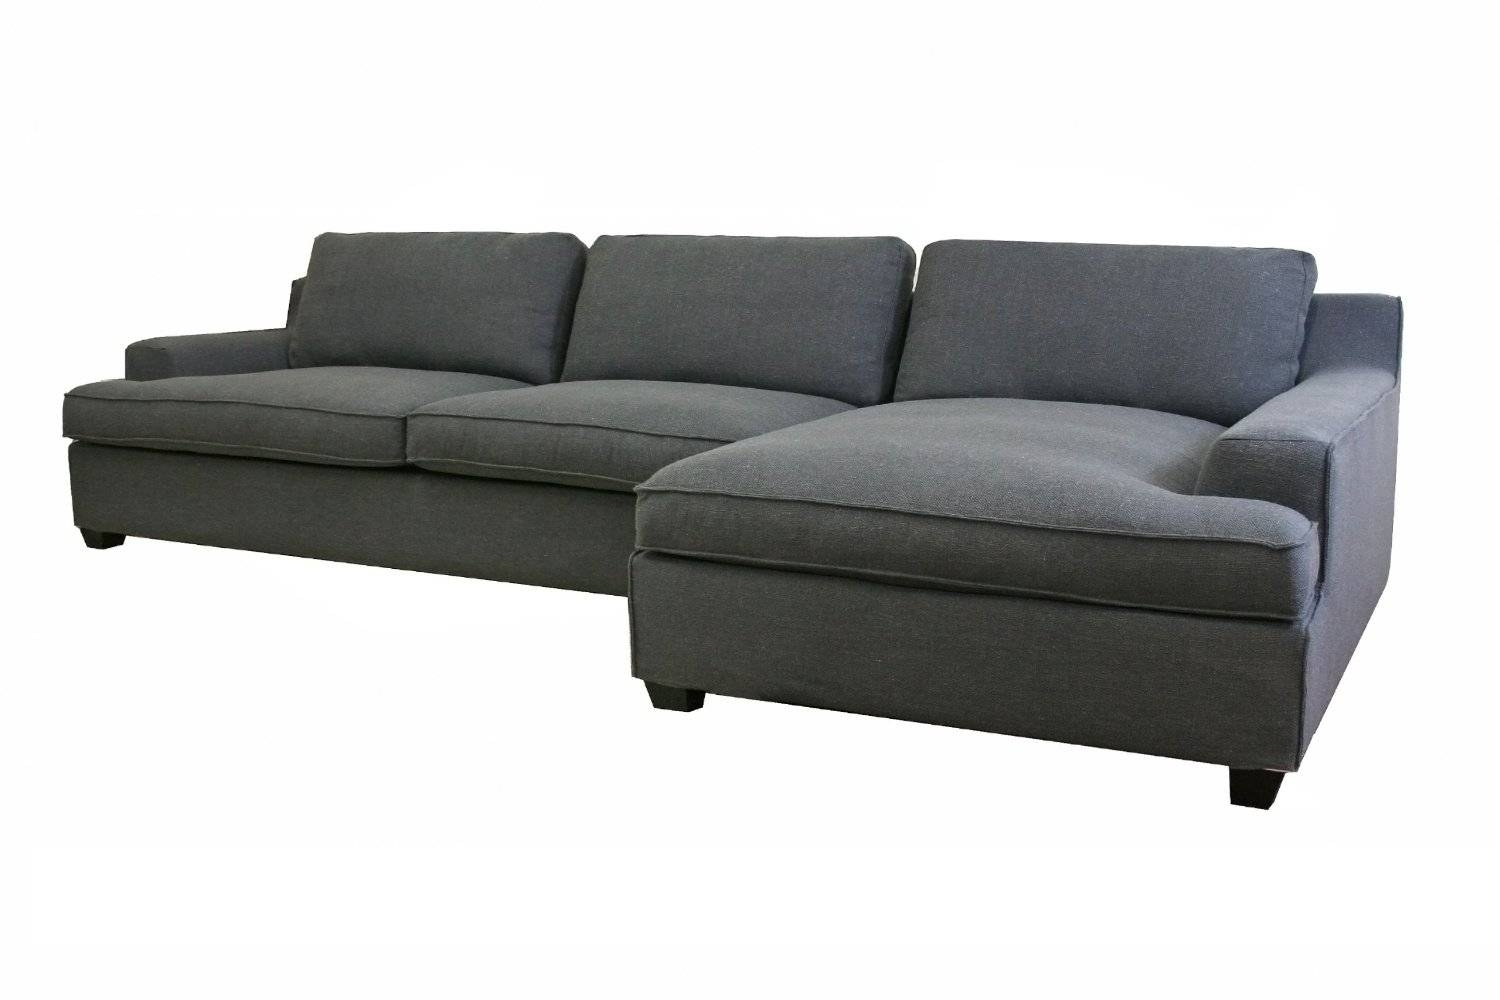 Sofas Center : Sectional Sofa Beds With Sleepersectional Sleepers within Sectional Sofa Beds (Image 23 of 30)